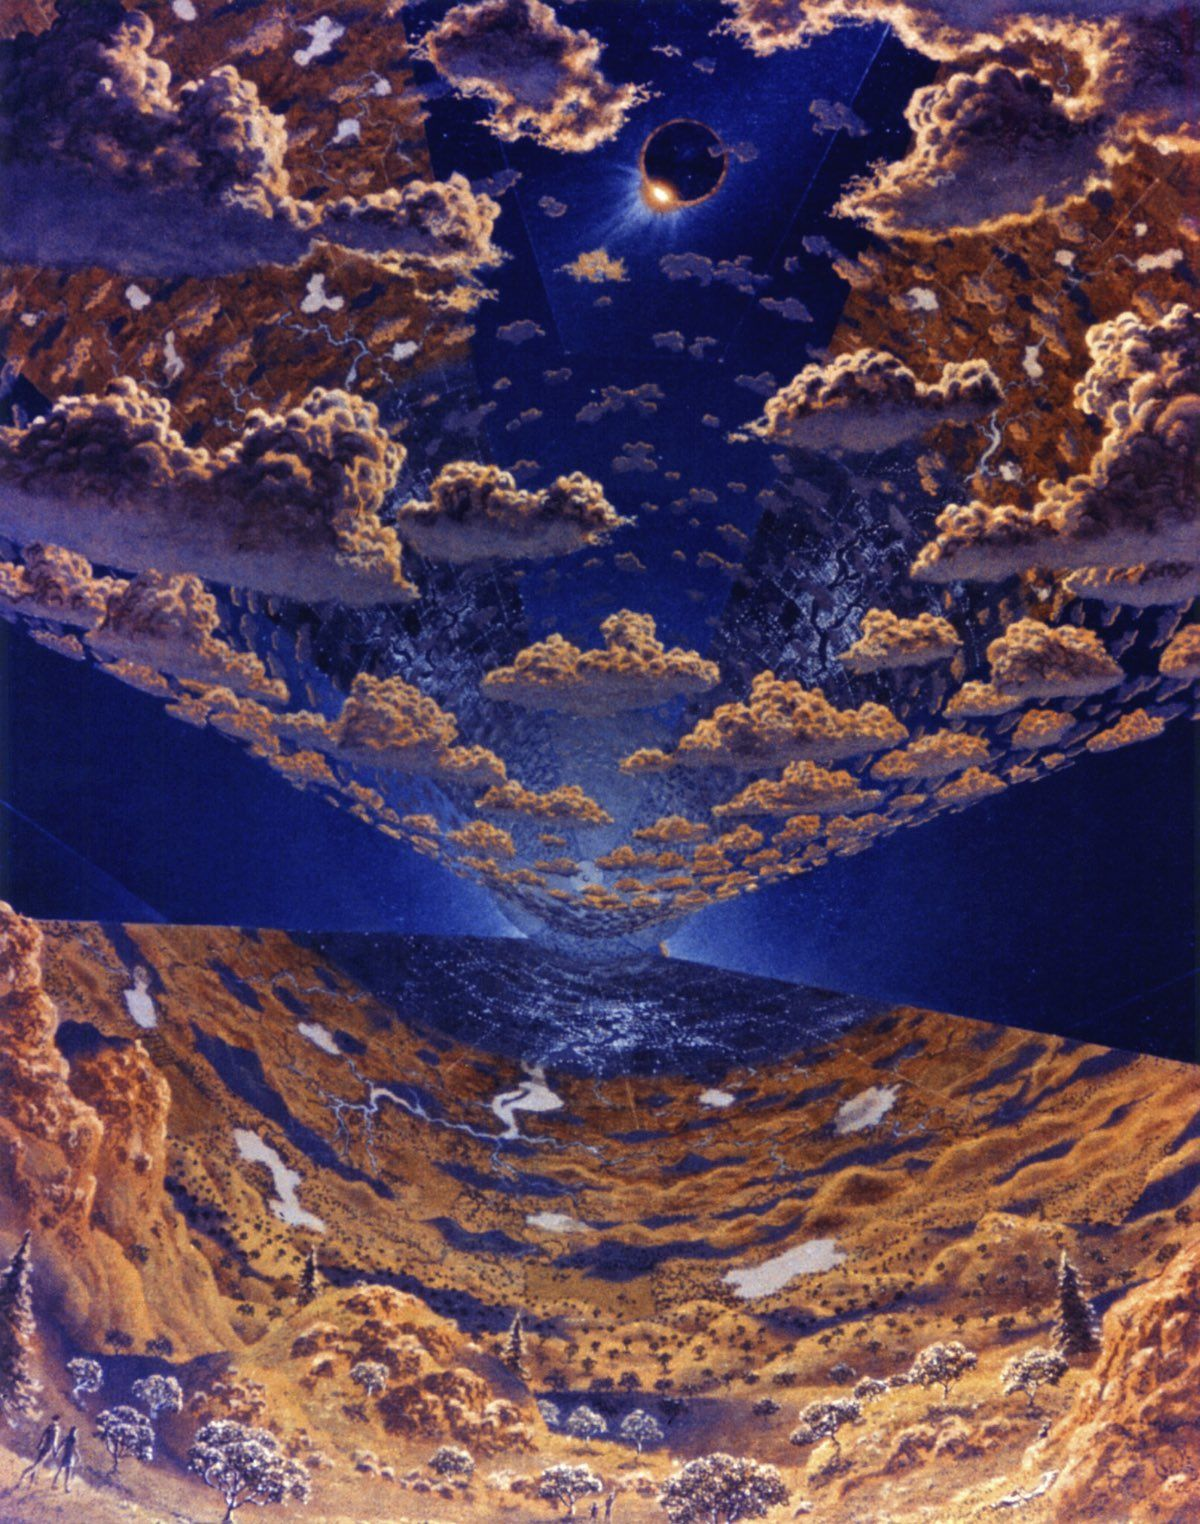 Cylinder Eclipse. Eclipse of the sun with view of clouds and vegetation. Art work: Don Davis. Credit: NASA Ames Research Center. NASA ID AC75-1920